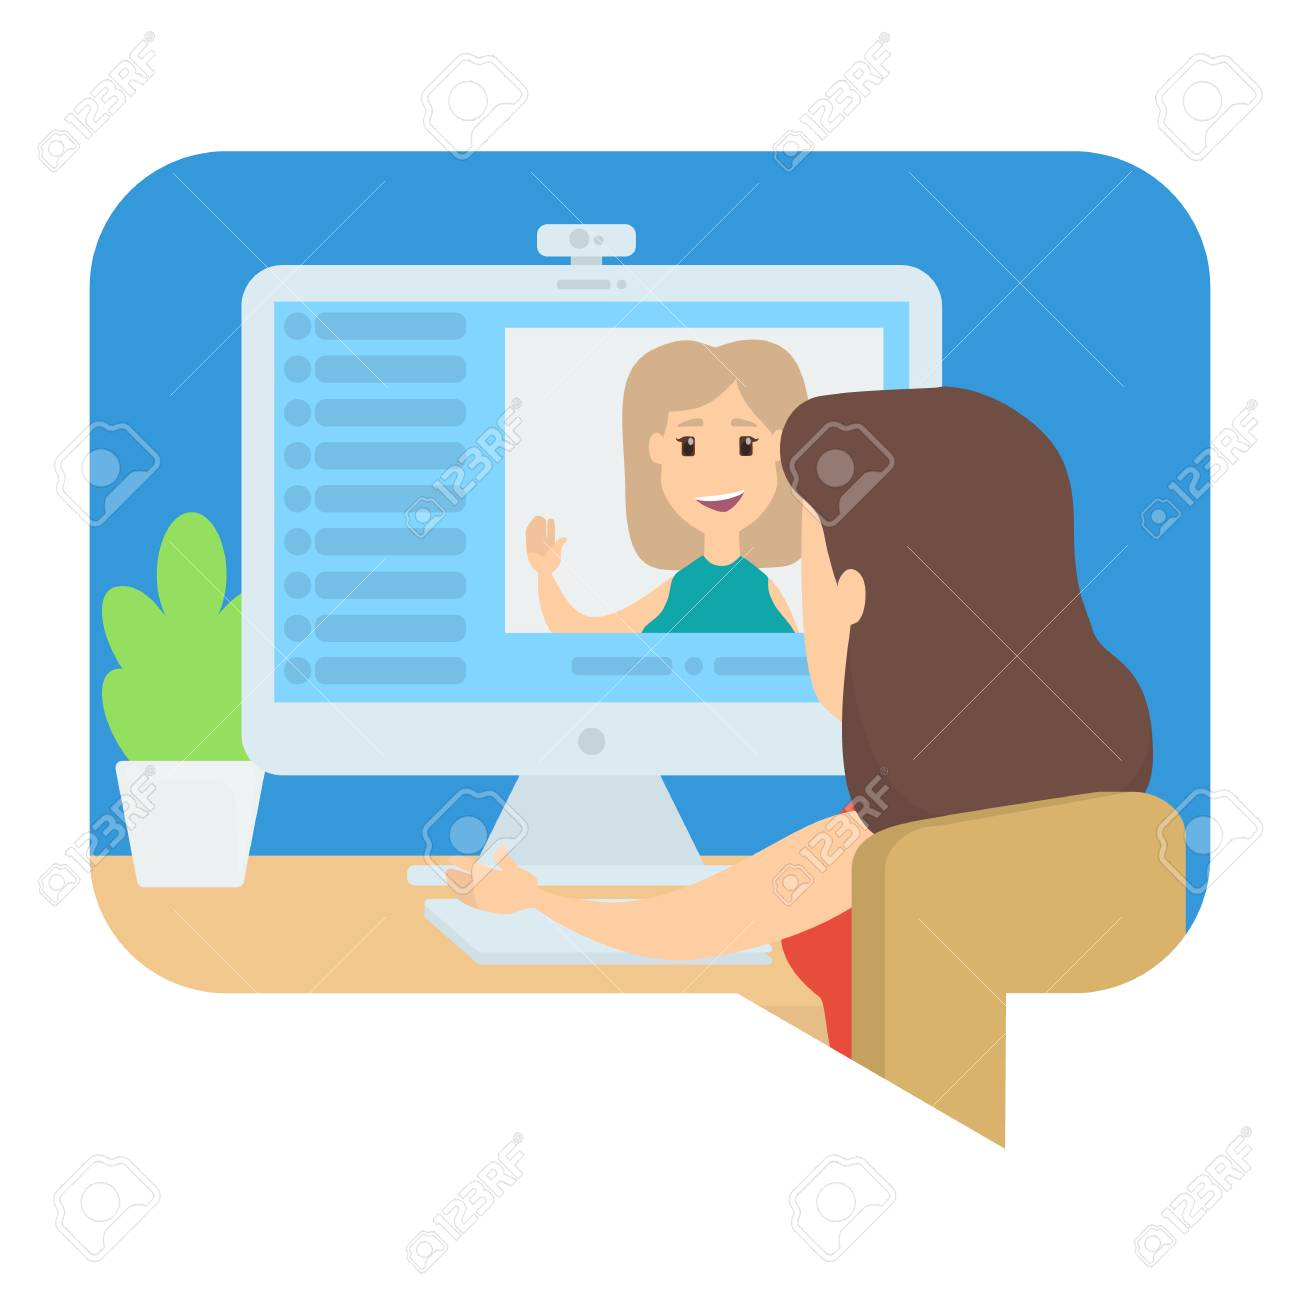 Video Chat Between Two Young Girls Communication Via Internet Royalty Free Cliparts Vectors And Stock Illustration Image 114893631